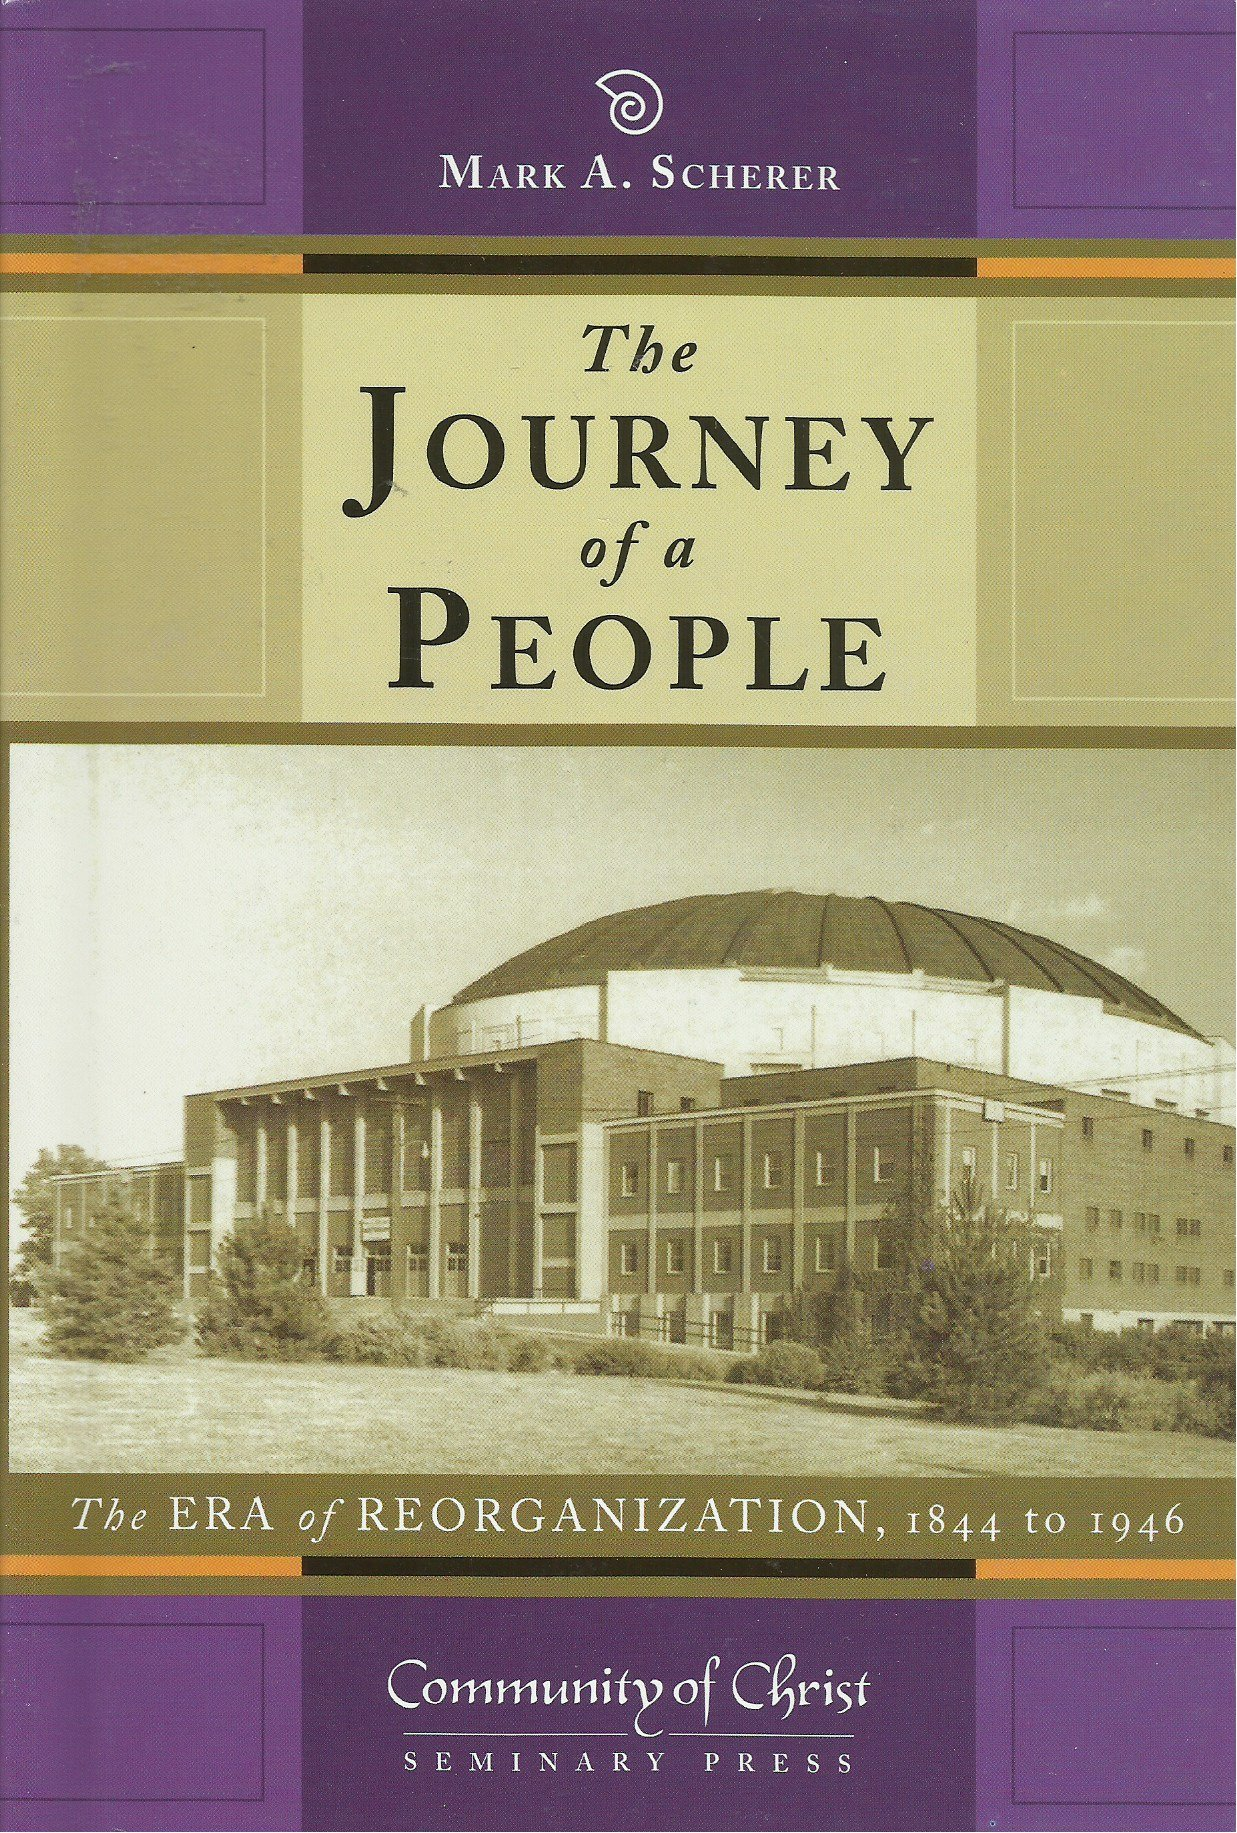 Download The Journey of a People - The Era of Reorganization, 1844 to 1946 PDF